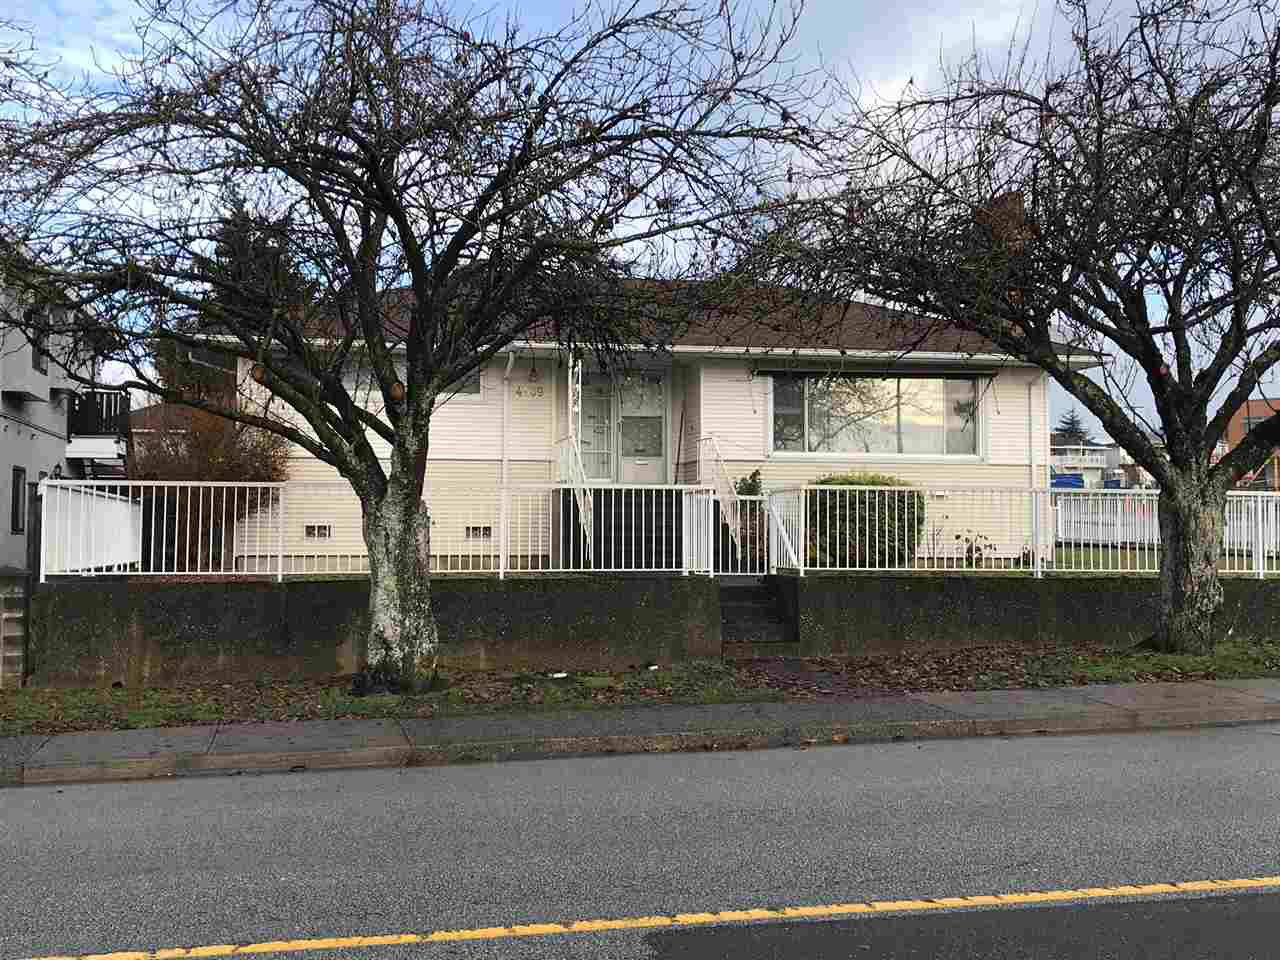 Main Photo: 4589 PARKER STREET in Burnaby: Brentwood Park House for sale (Burnaby North)  : MLS®# R2326745